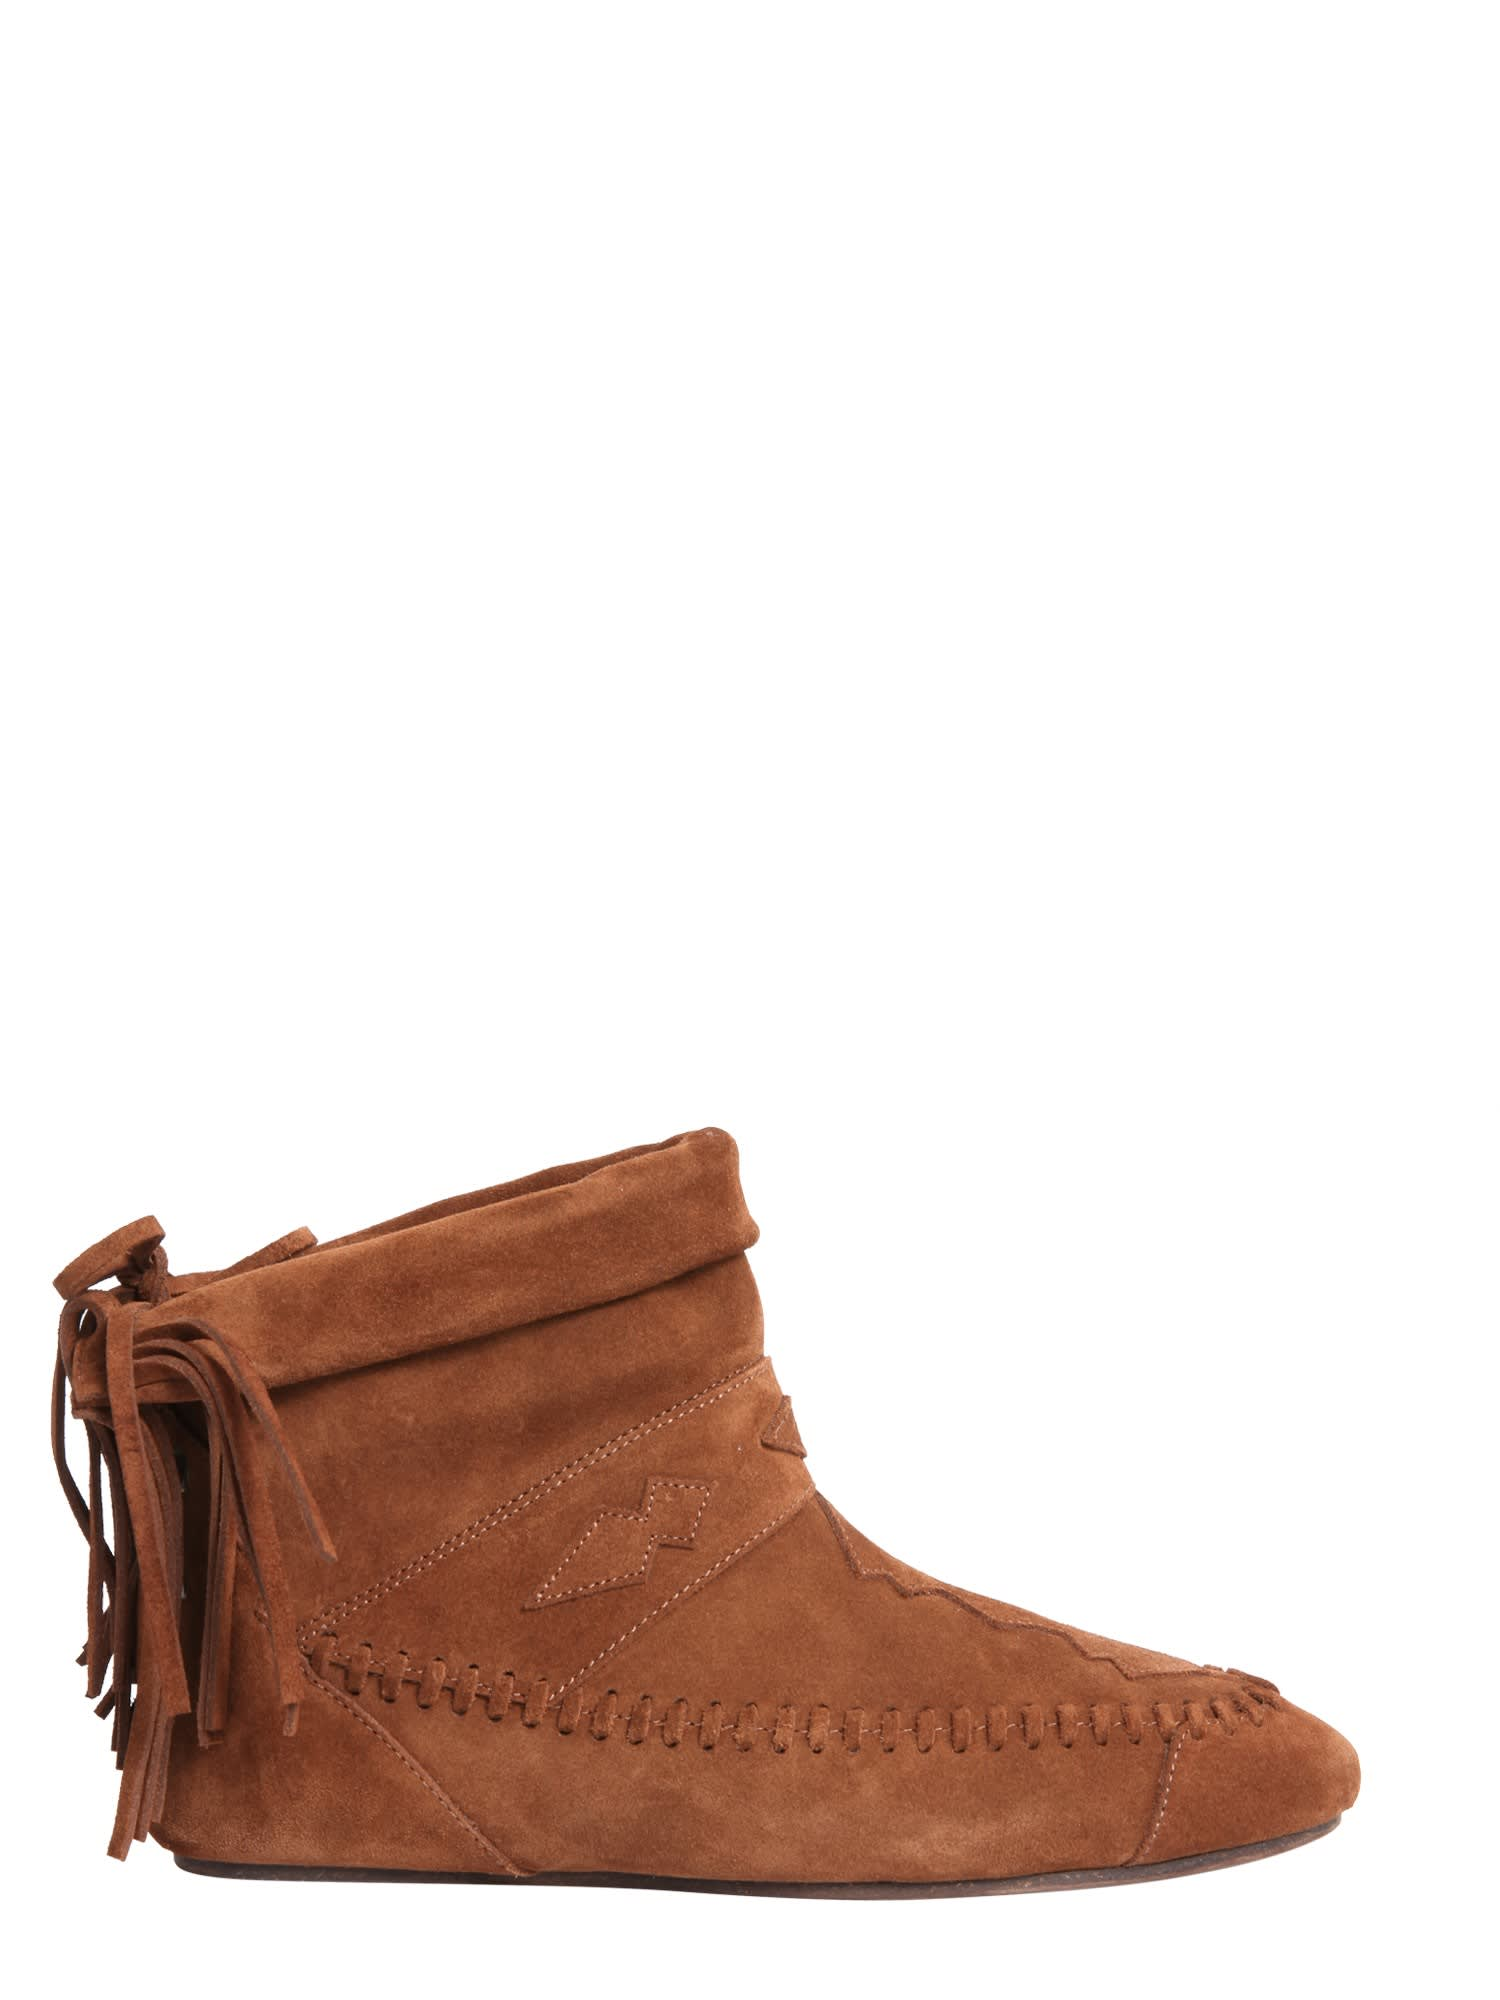 Buy Saint Laurent Nino Fringed Boots online, shop Saint Laurent shoes with free shipping